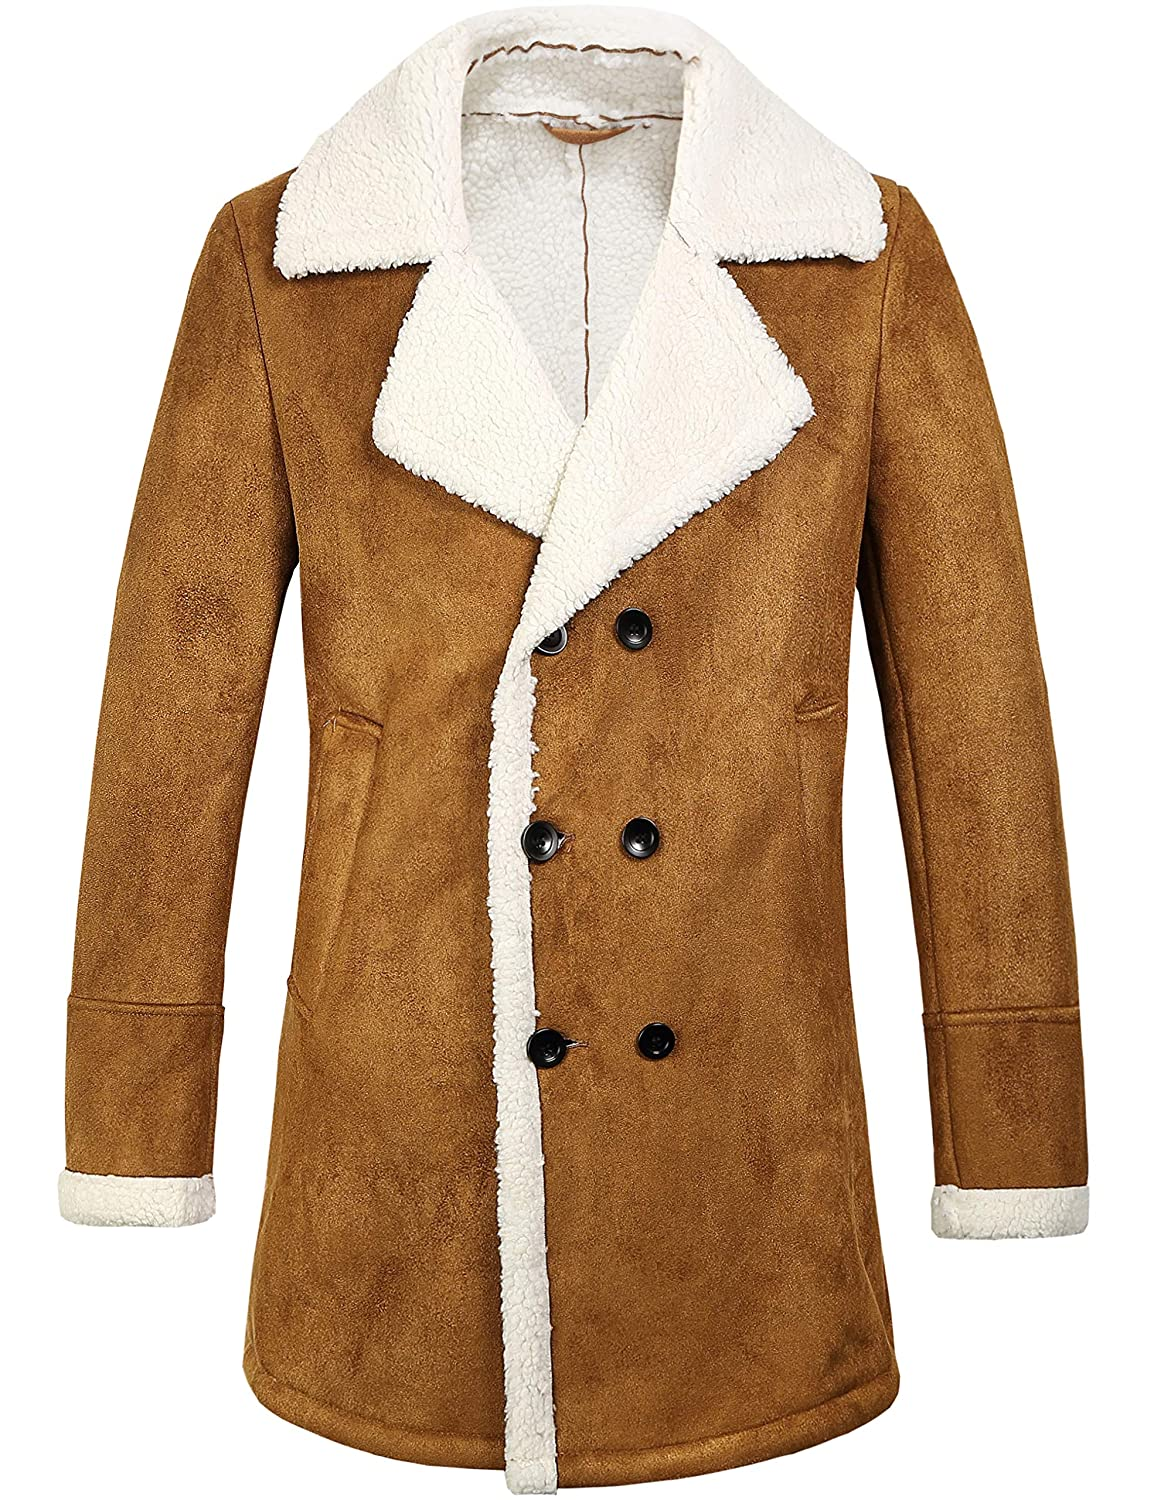 SSLR Men's Winter Double Breasted Shearling Lined Long Suede Jacket